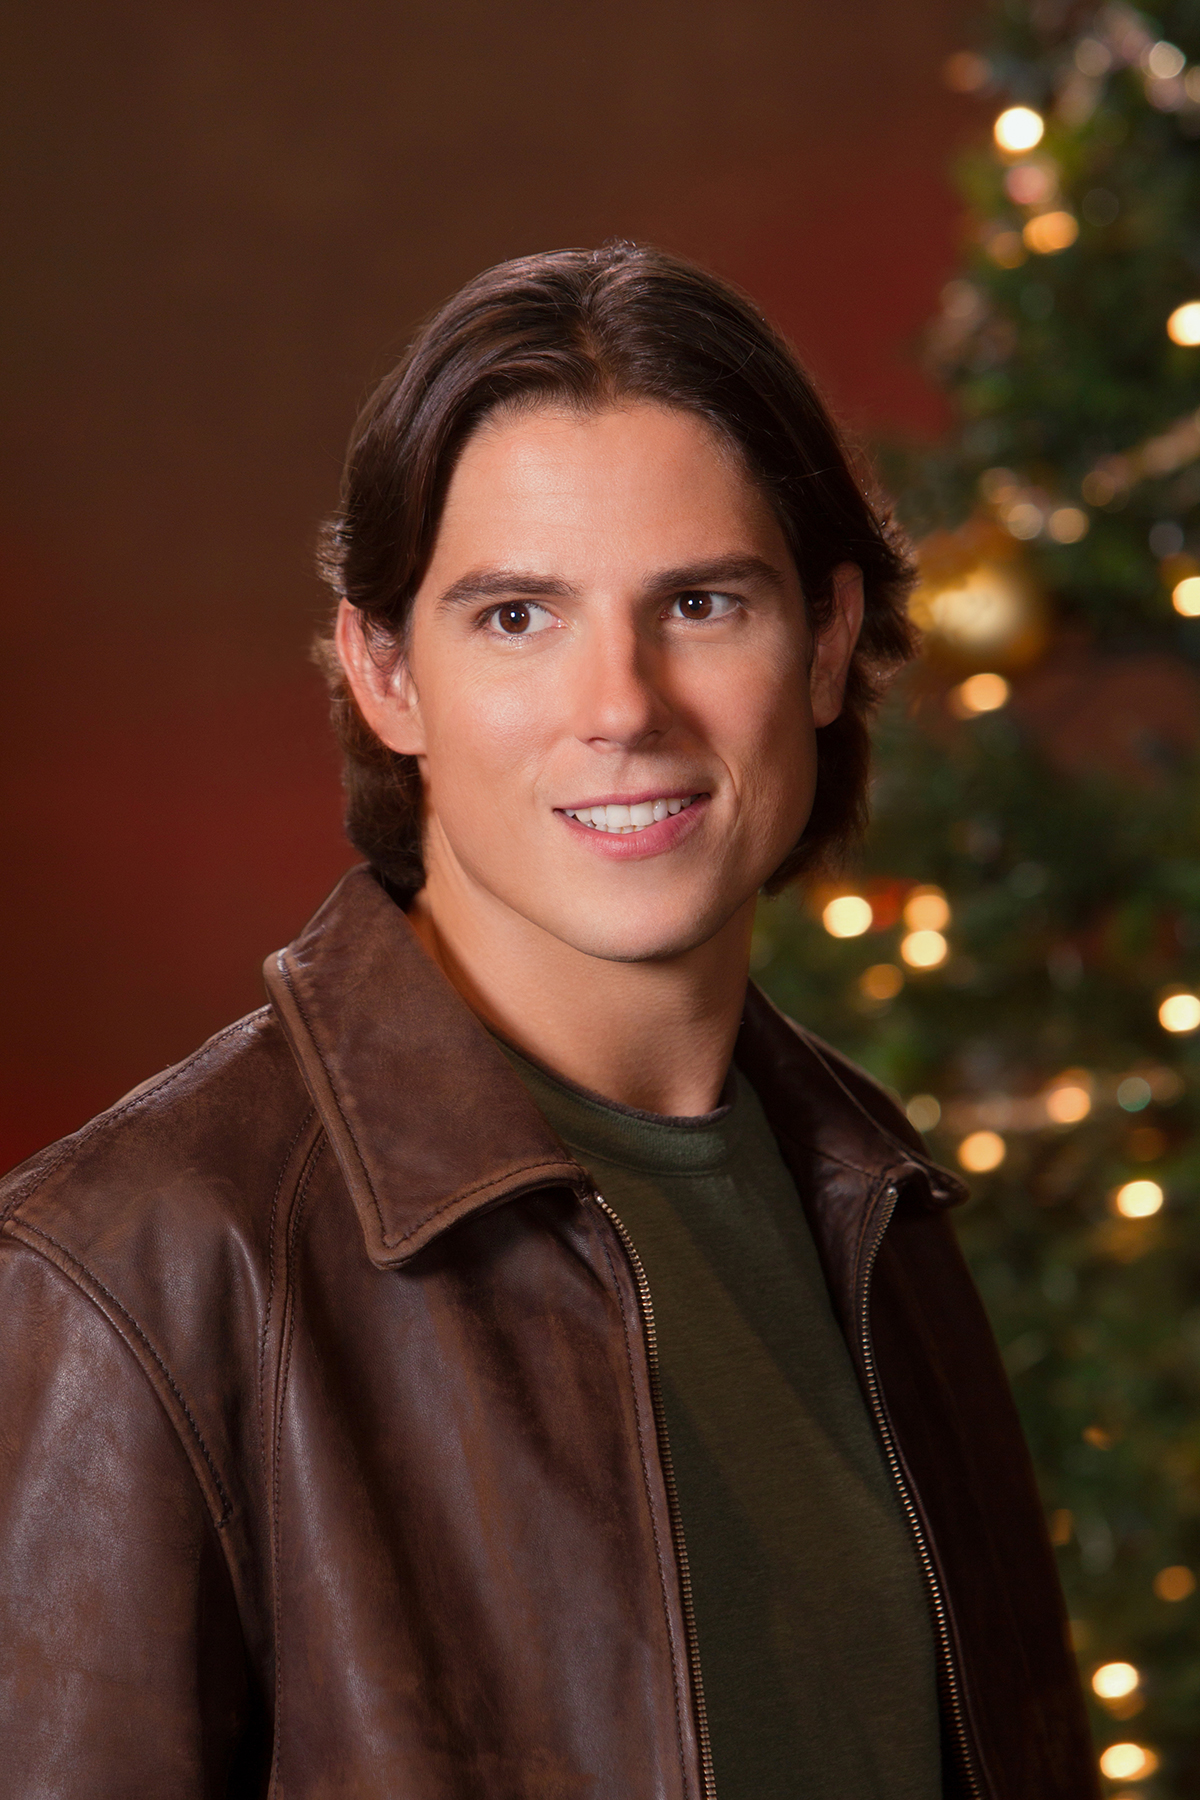 sean faris movies